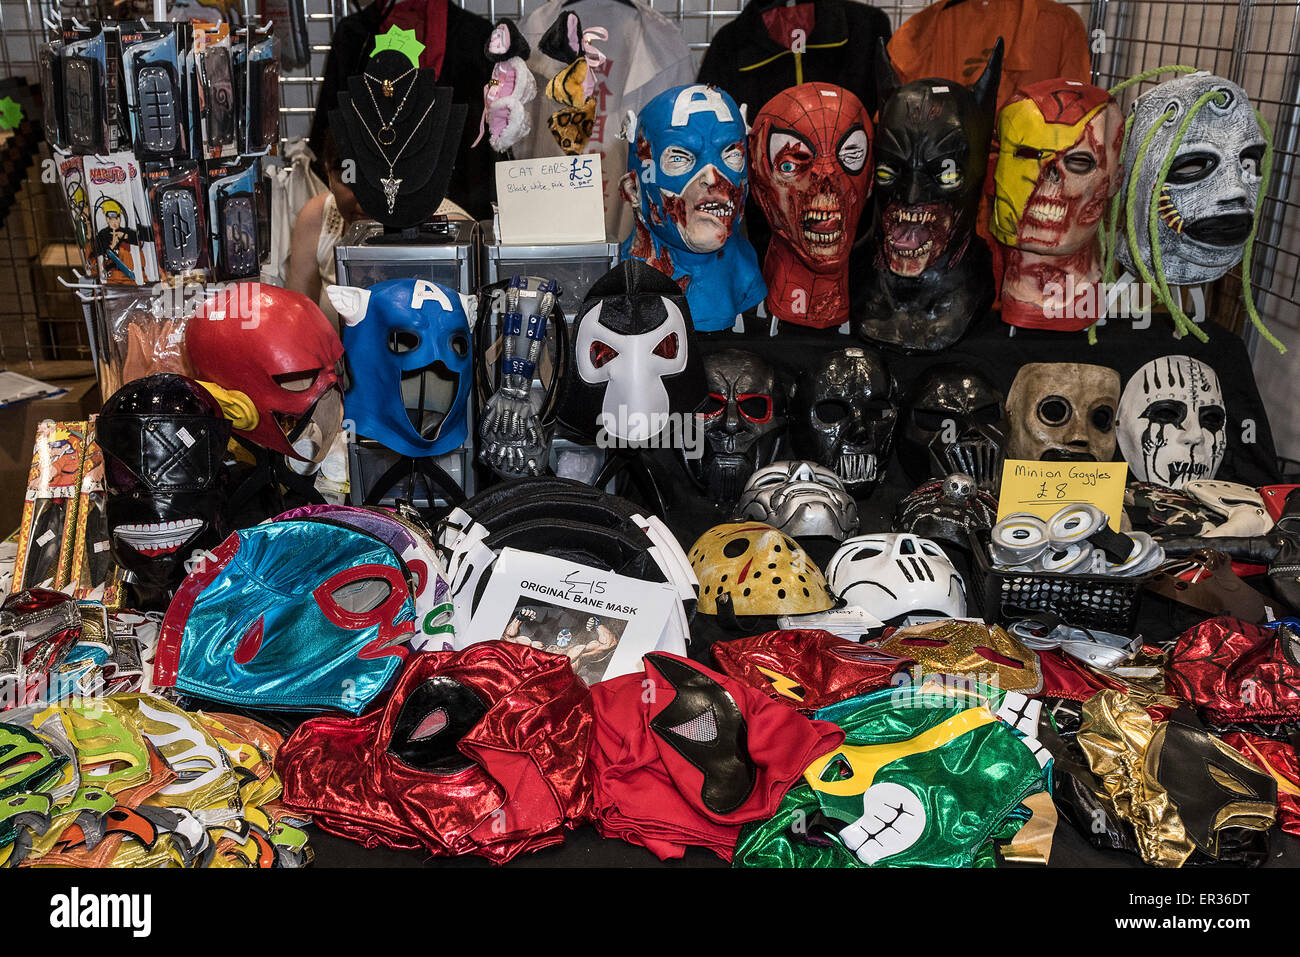 A stall selling various masks at the mcm london comic con at the excel centre